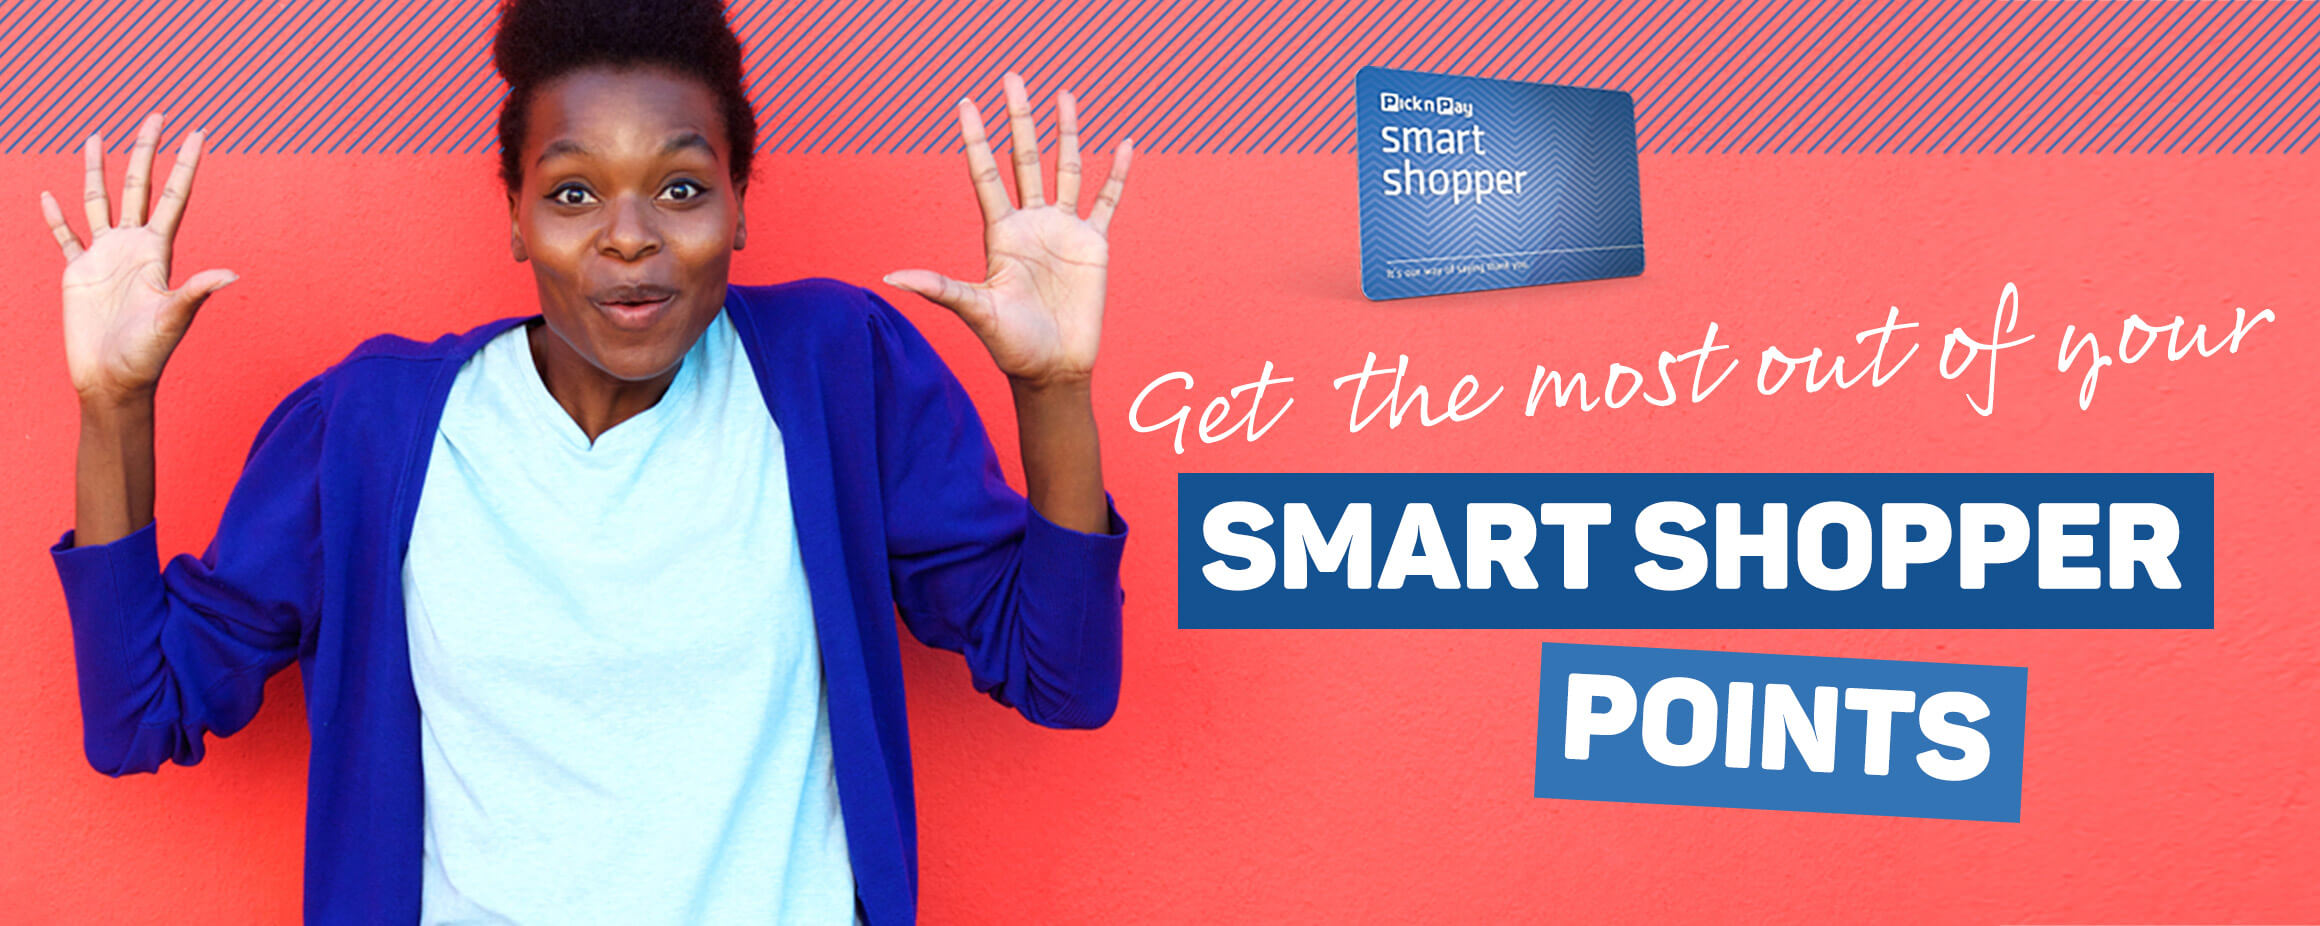 Get the most out of your Smart Shopper points